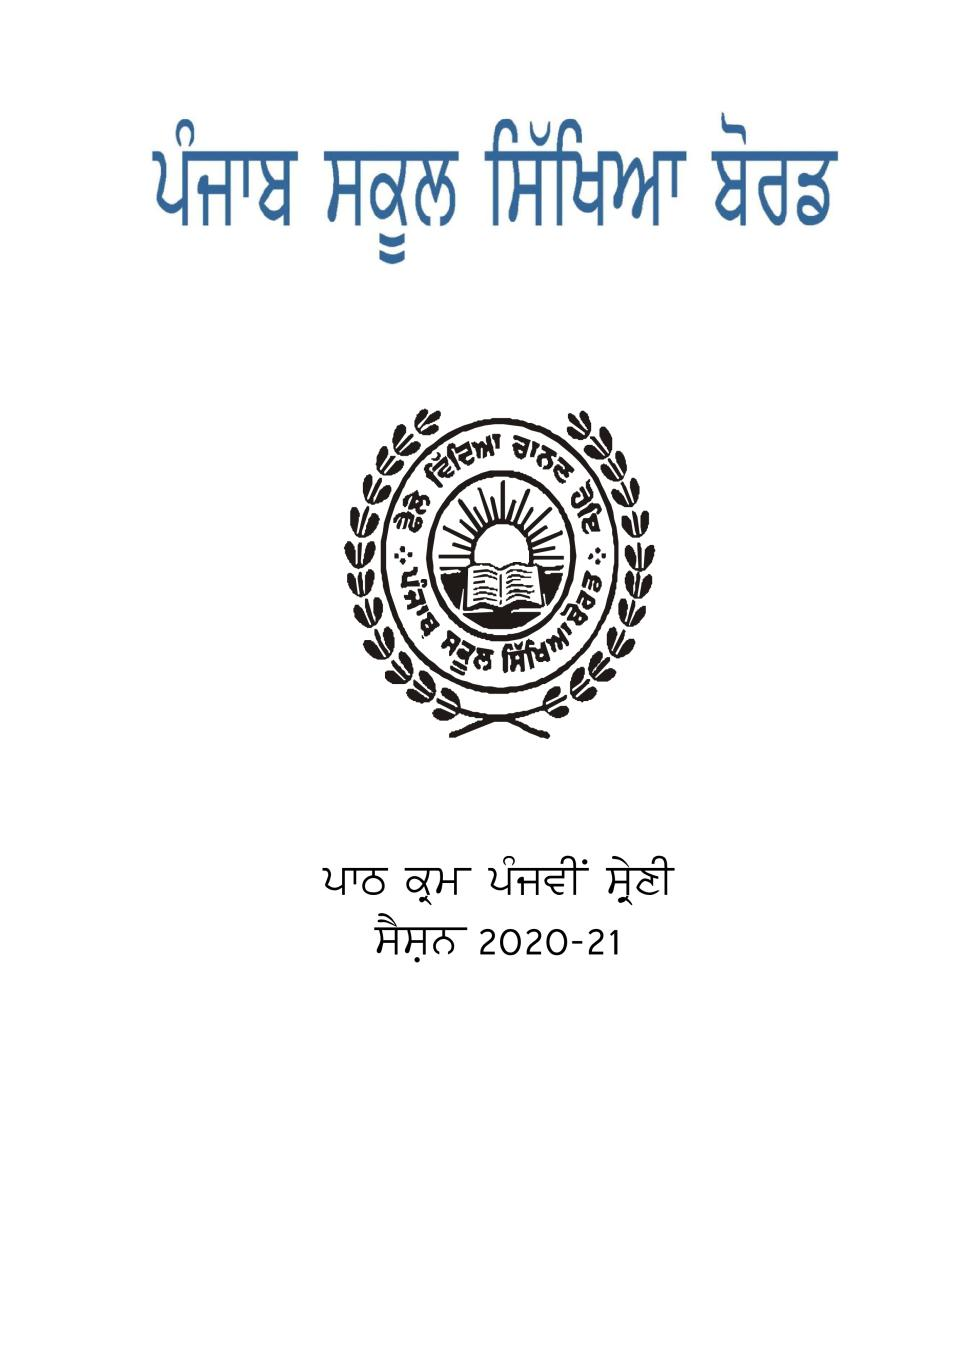 PSEB Syllabus 2020-21 for Class 5 Scheme of Studies - Page 1